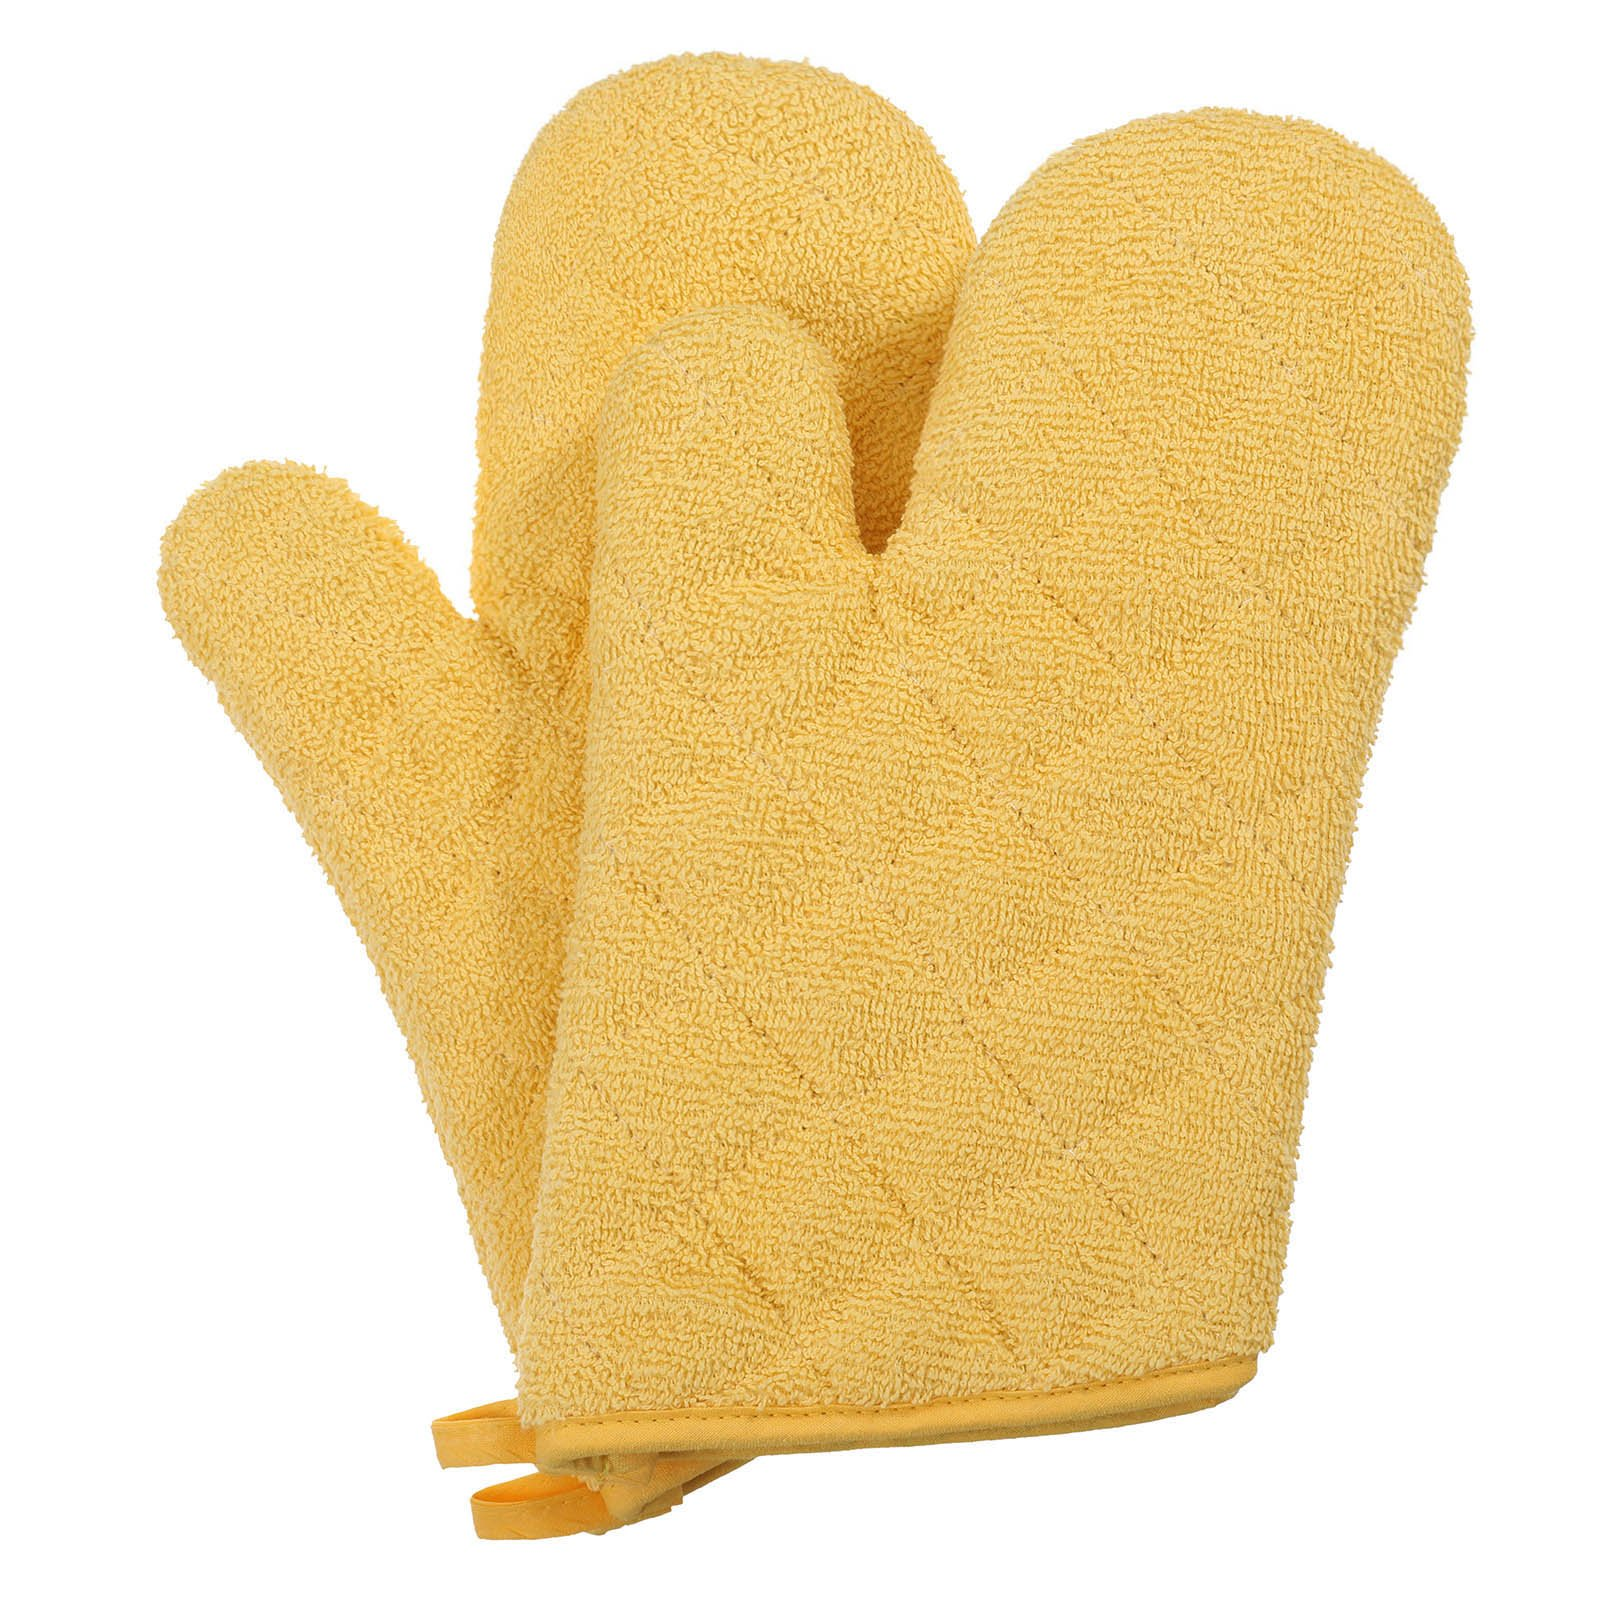 VEEYOO 100% Cotton Oven Mitts Kitchen Oven Gloves Heat Resistant Terry Oven Mitts 7x12, Yellow